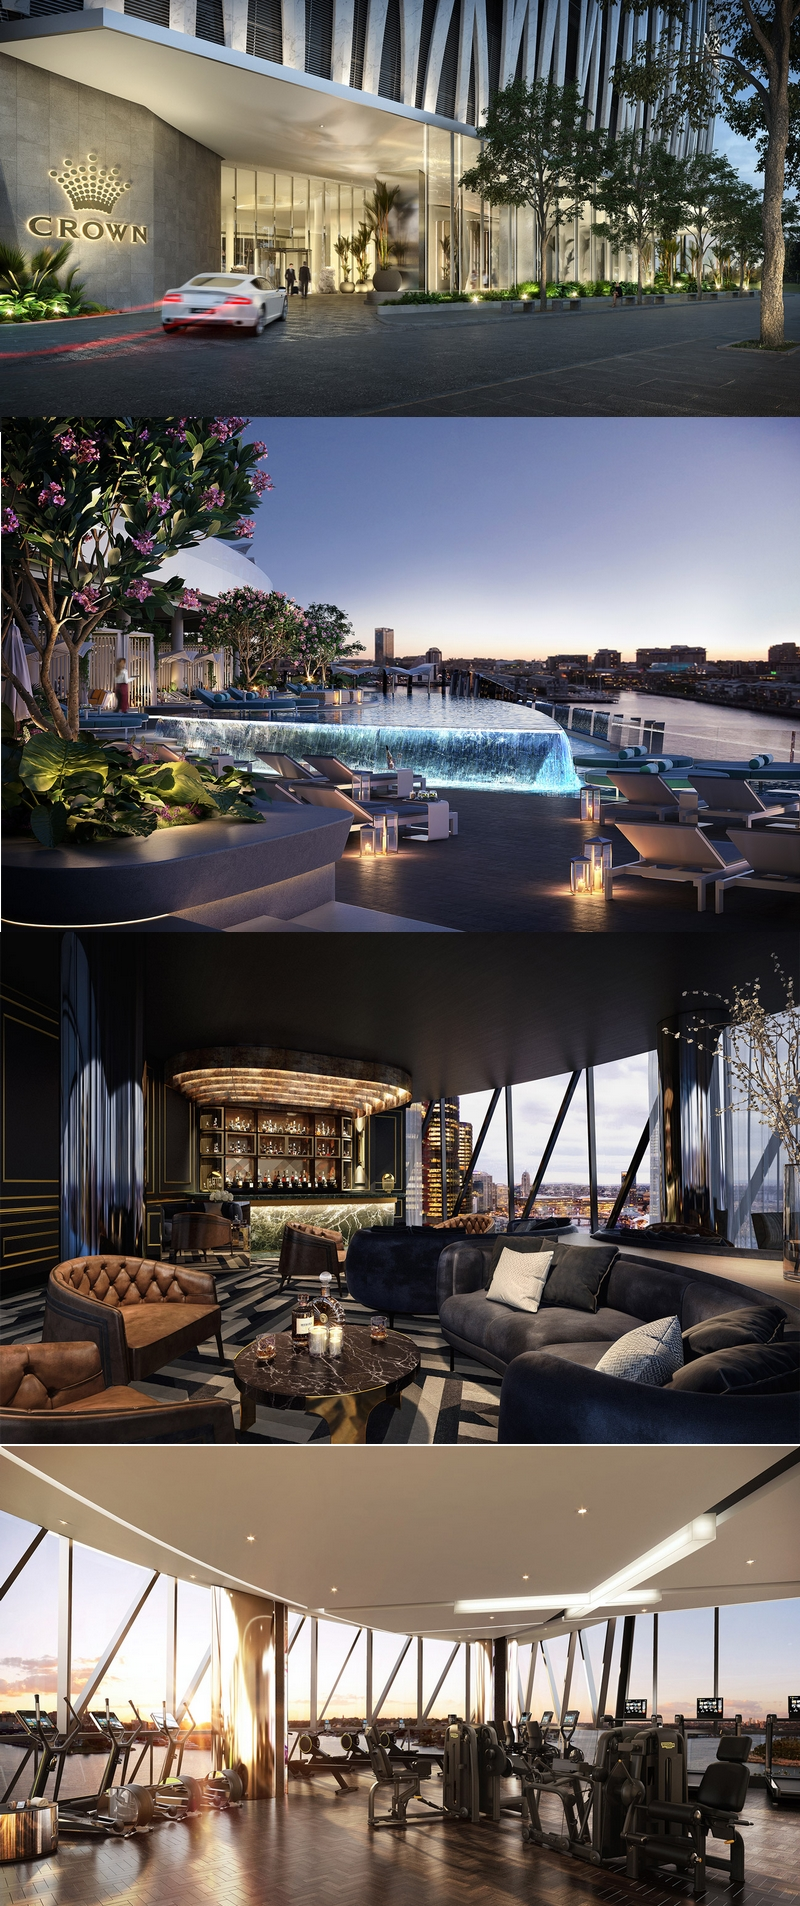 crownsydney - Crown Sydney to be a luxury, 6-star experience-2021 Opening-gallery